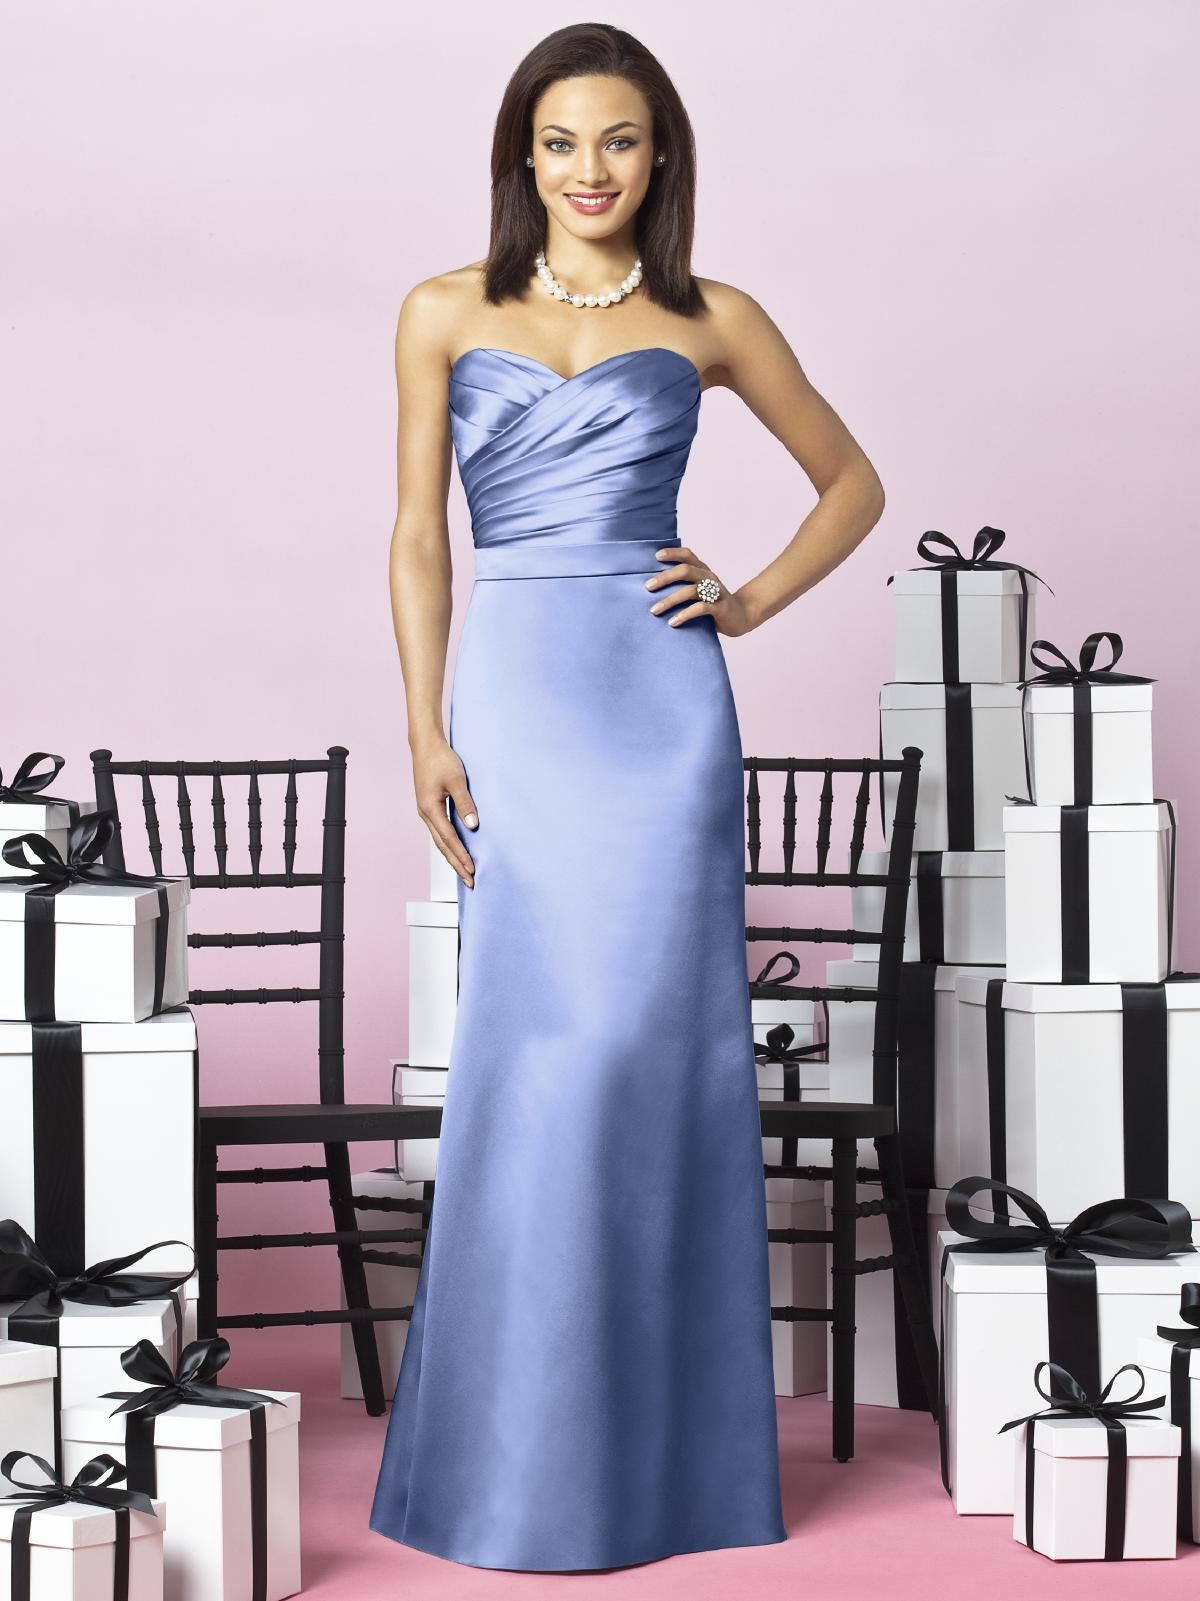 Periwinkle 2 bridesmaid colors and designs pinterest colors periwinkle 2 bridesmaid ombrellifo Image collections